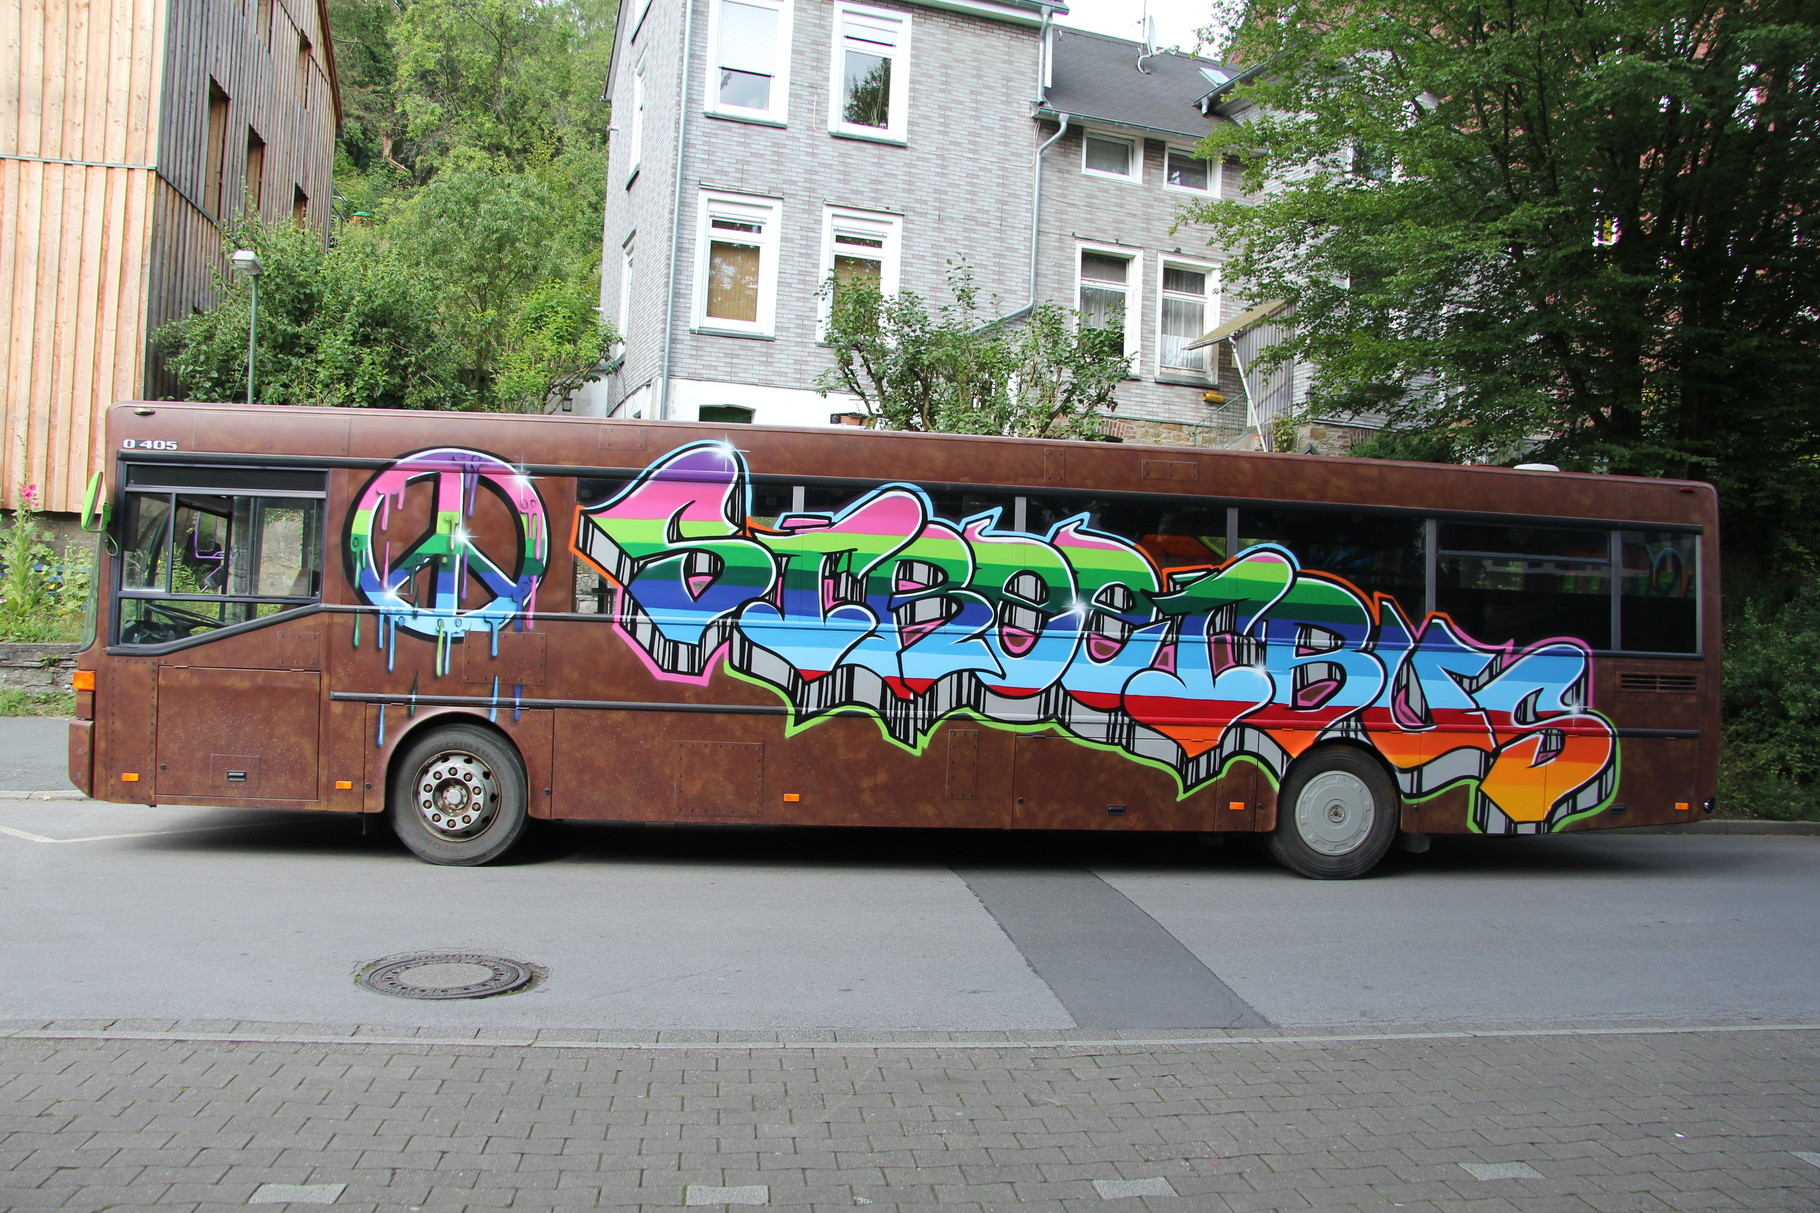 Bus in Rostoptik und Graffiti